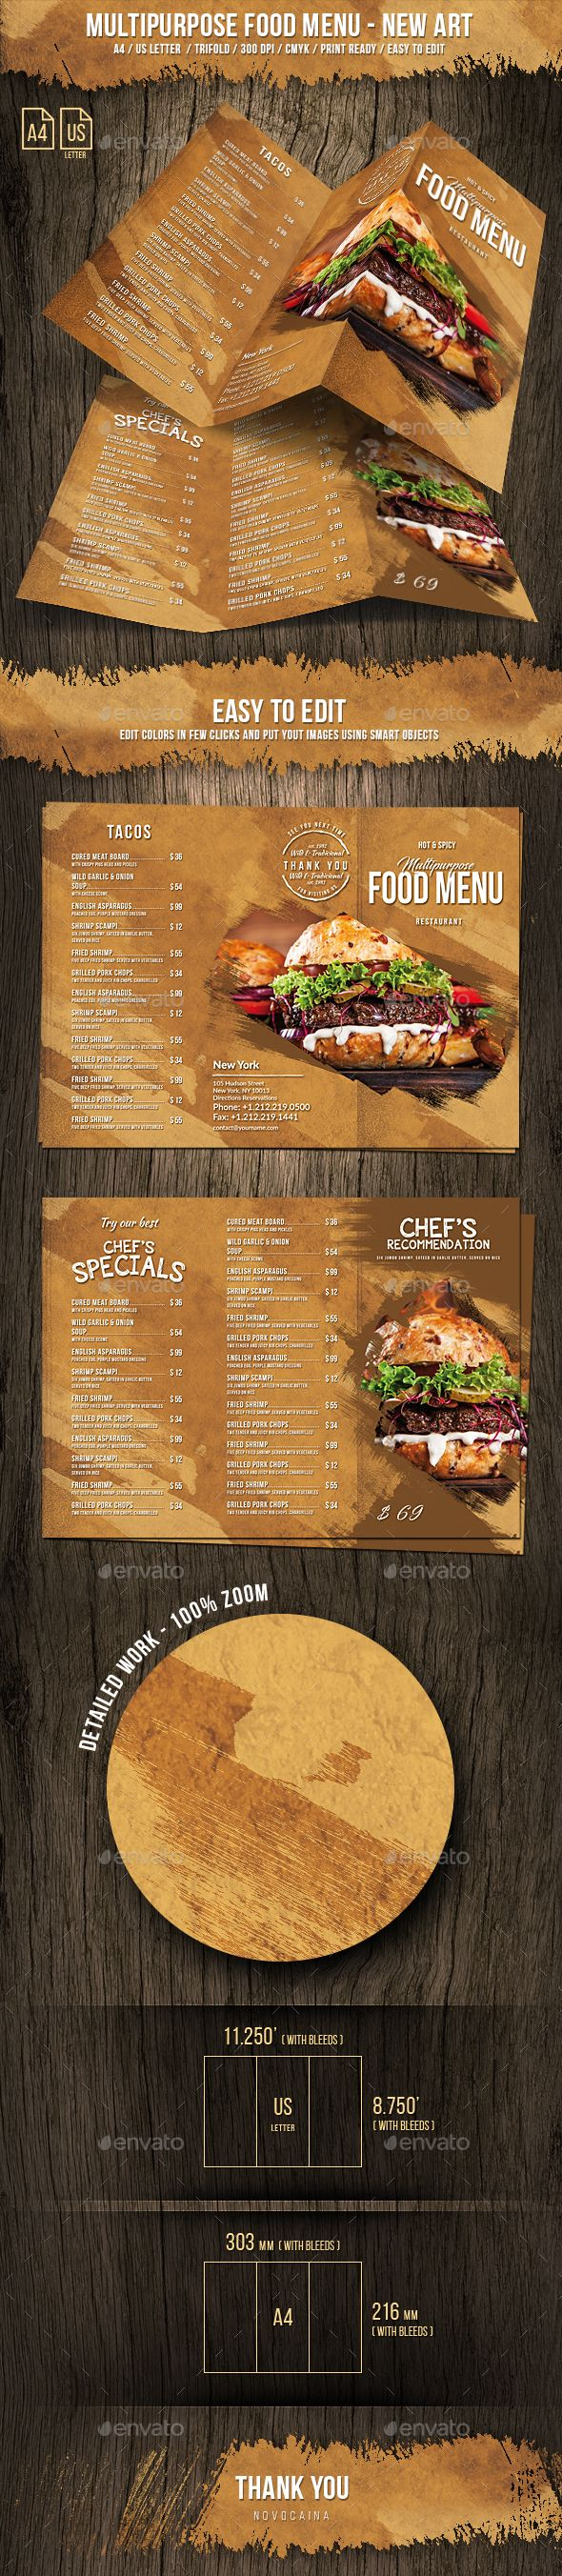 Best Best Food Menu Templates Images On